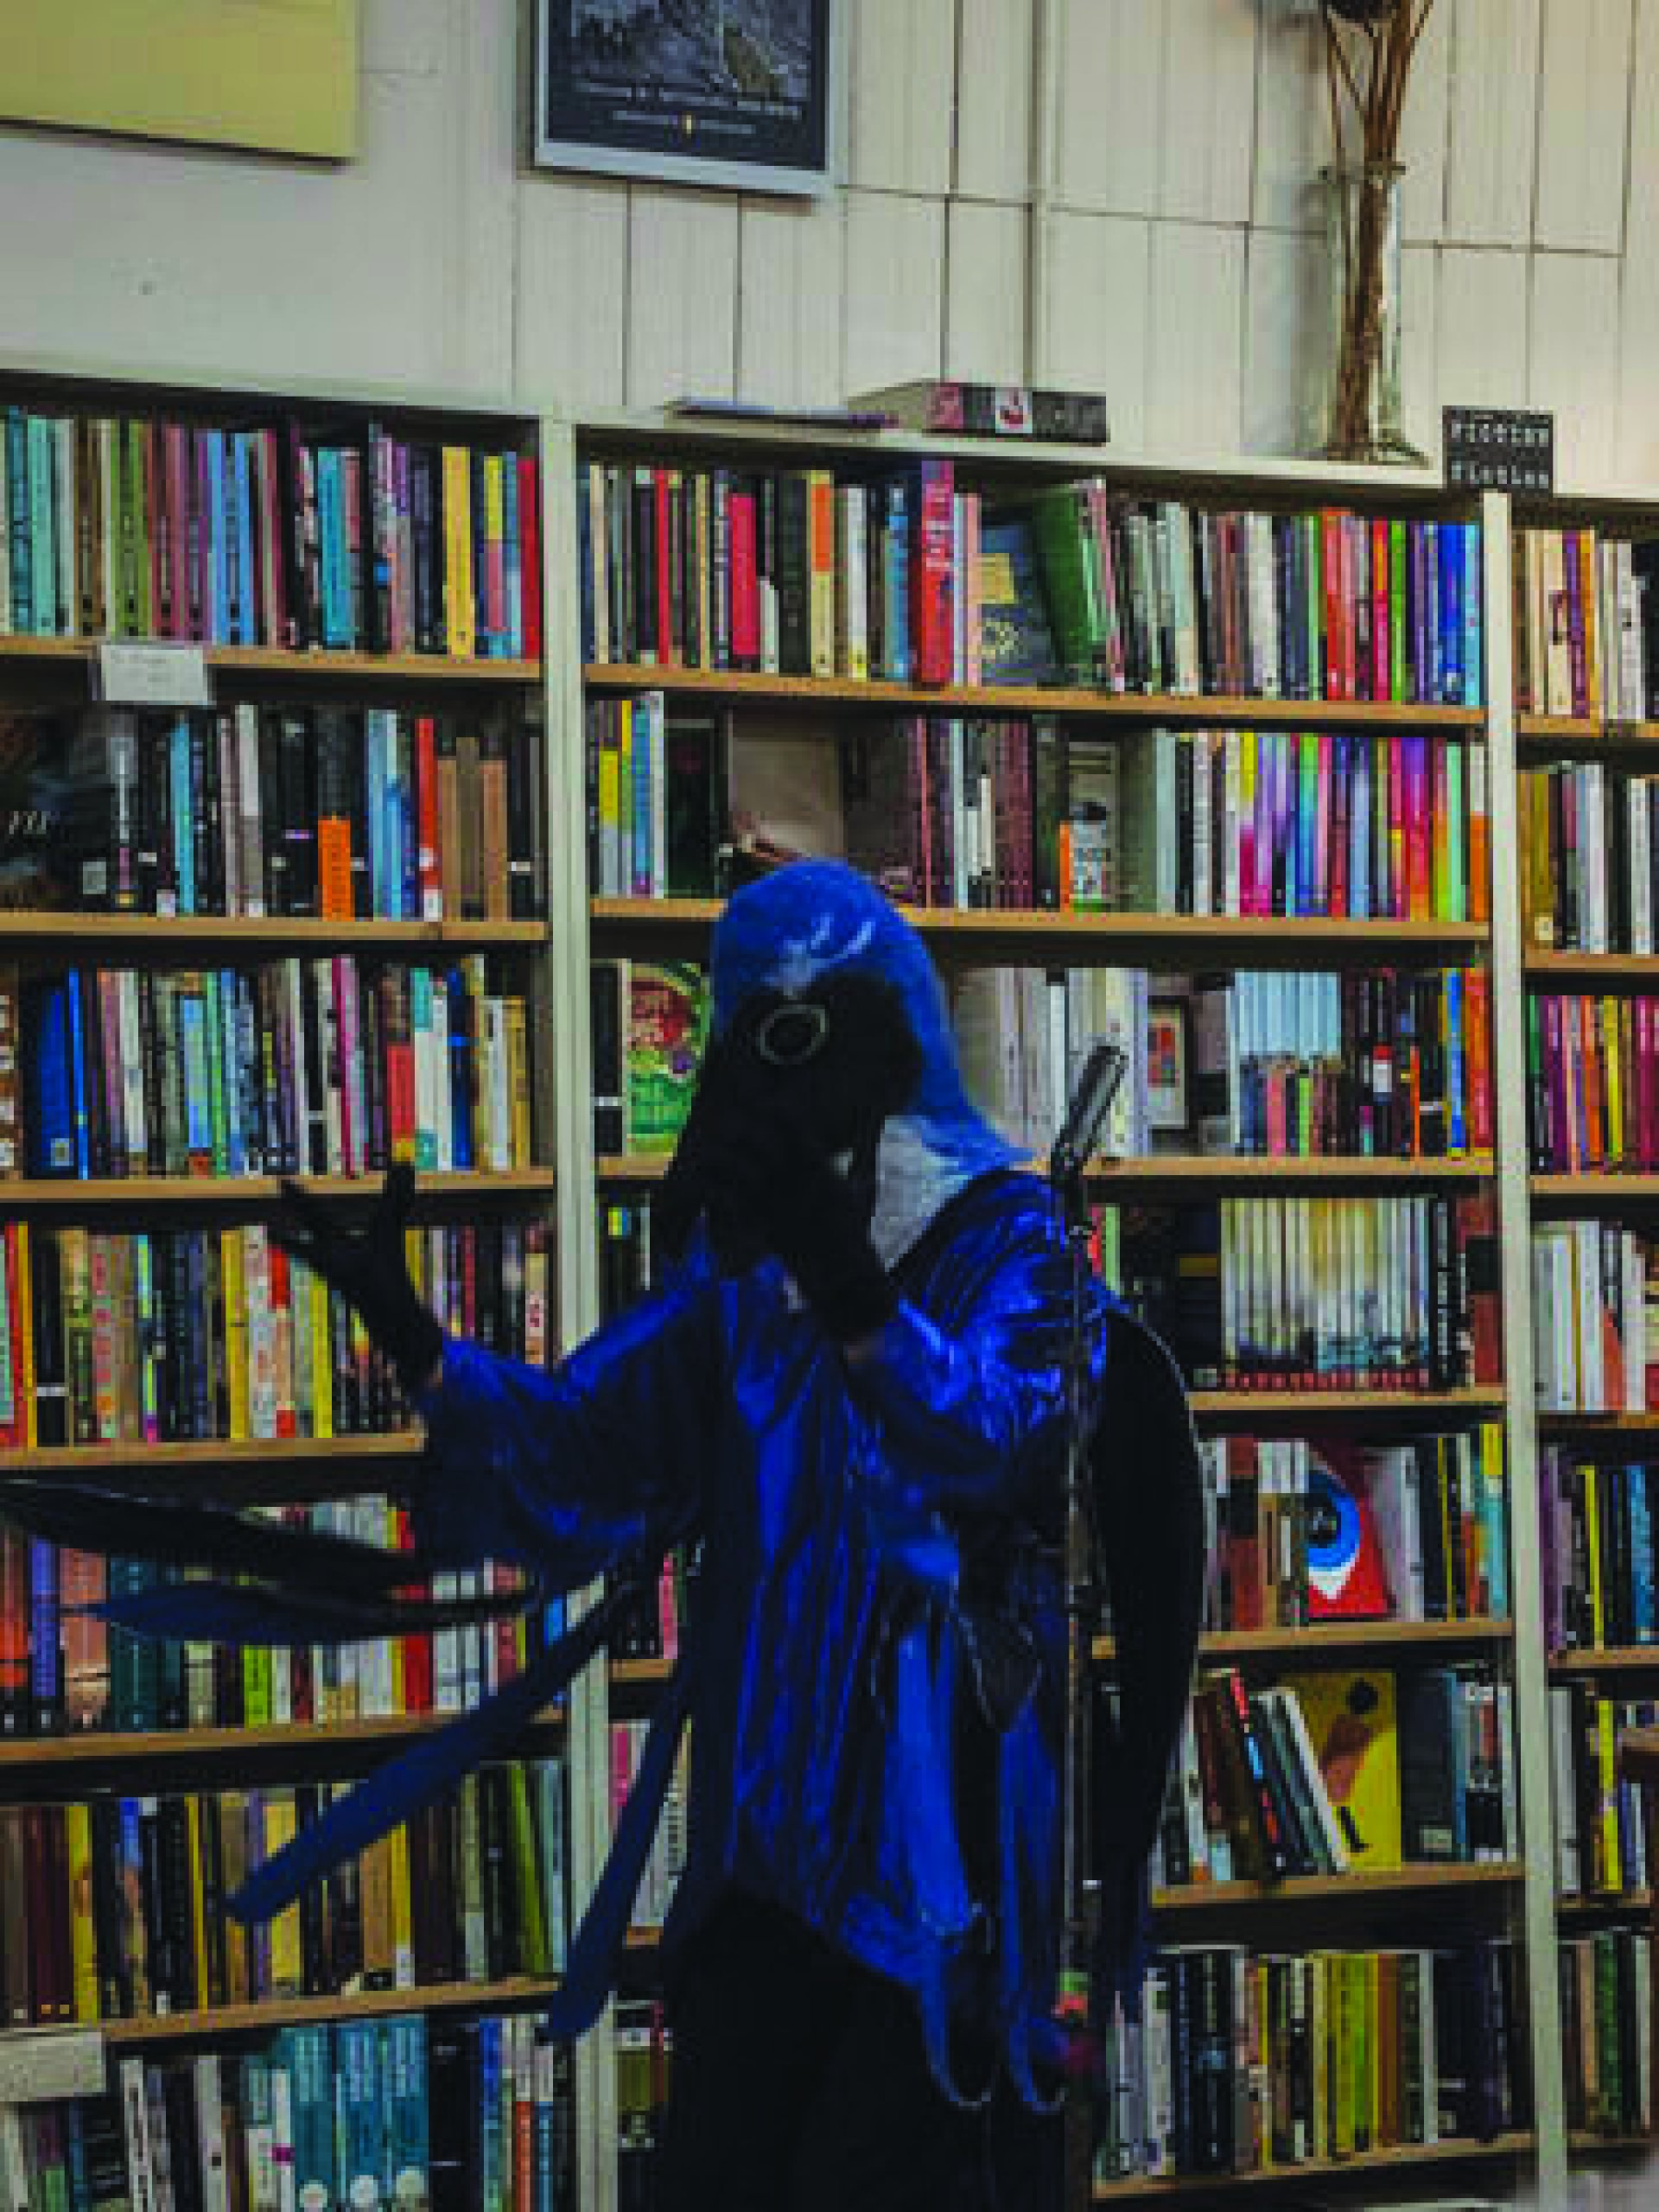 Poet Kirk Lumpkin as MC blue jay during Arcata Arts Alive poetry reading at Northtown Books on Friday April 12.| Photo by T.William Wallin